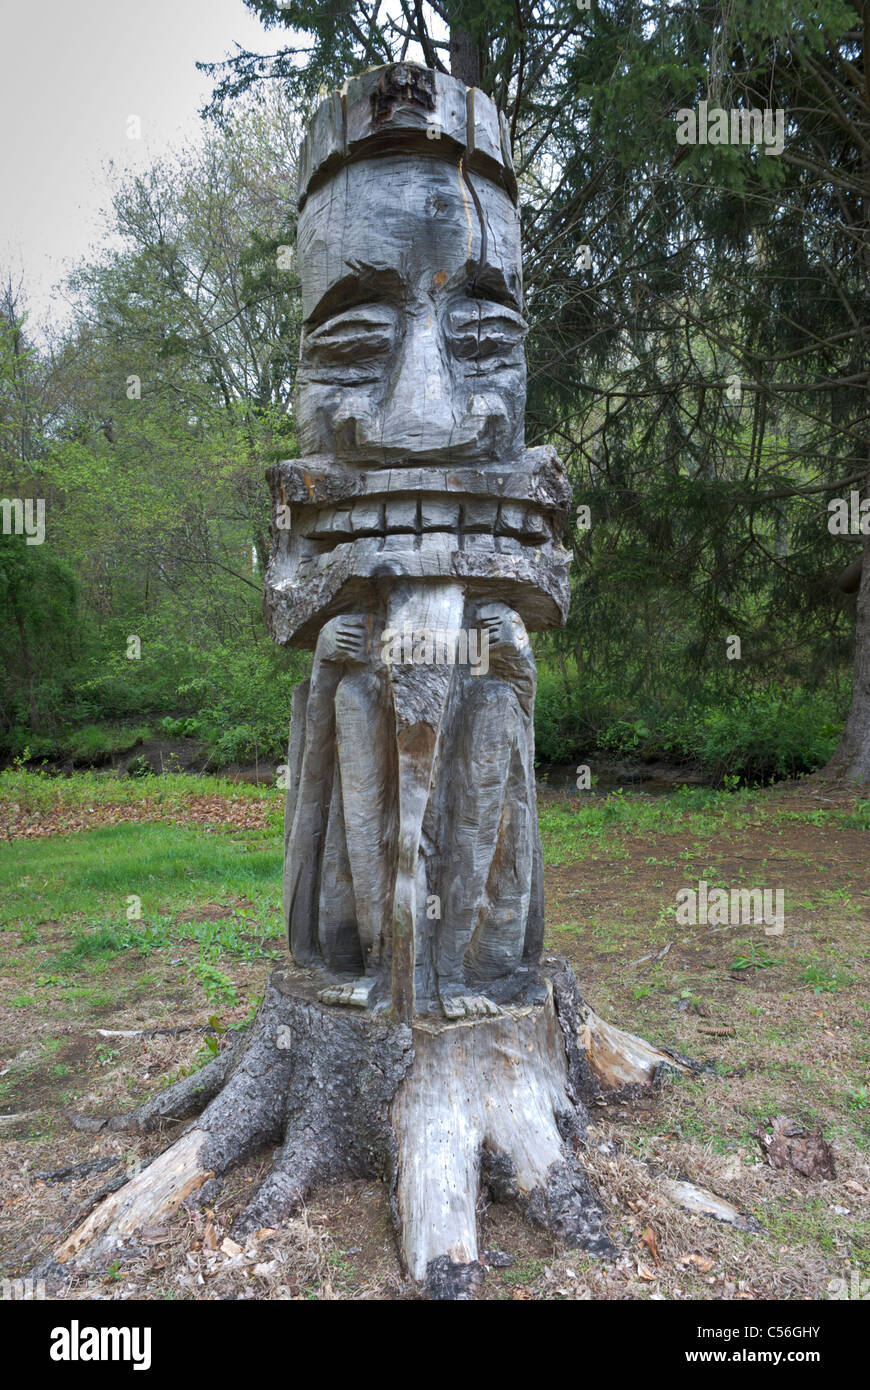 A creative wood carver has made an unusual totem from an old tree stump in Berkley, Massachusetts. - Stock Image